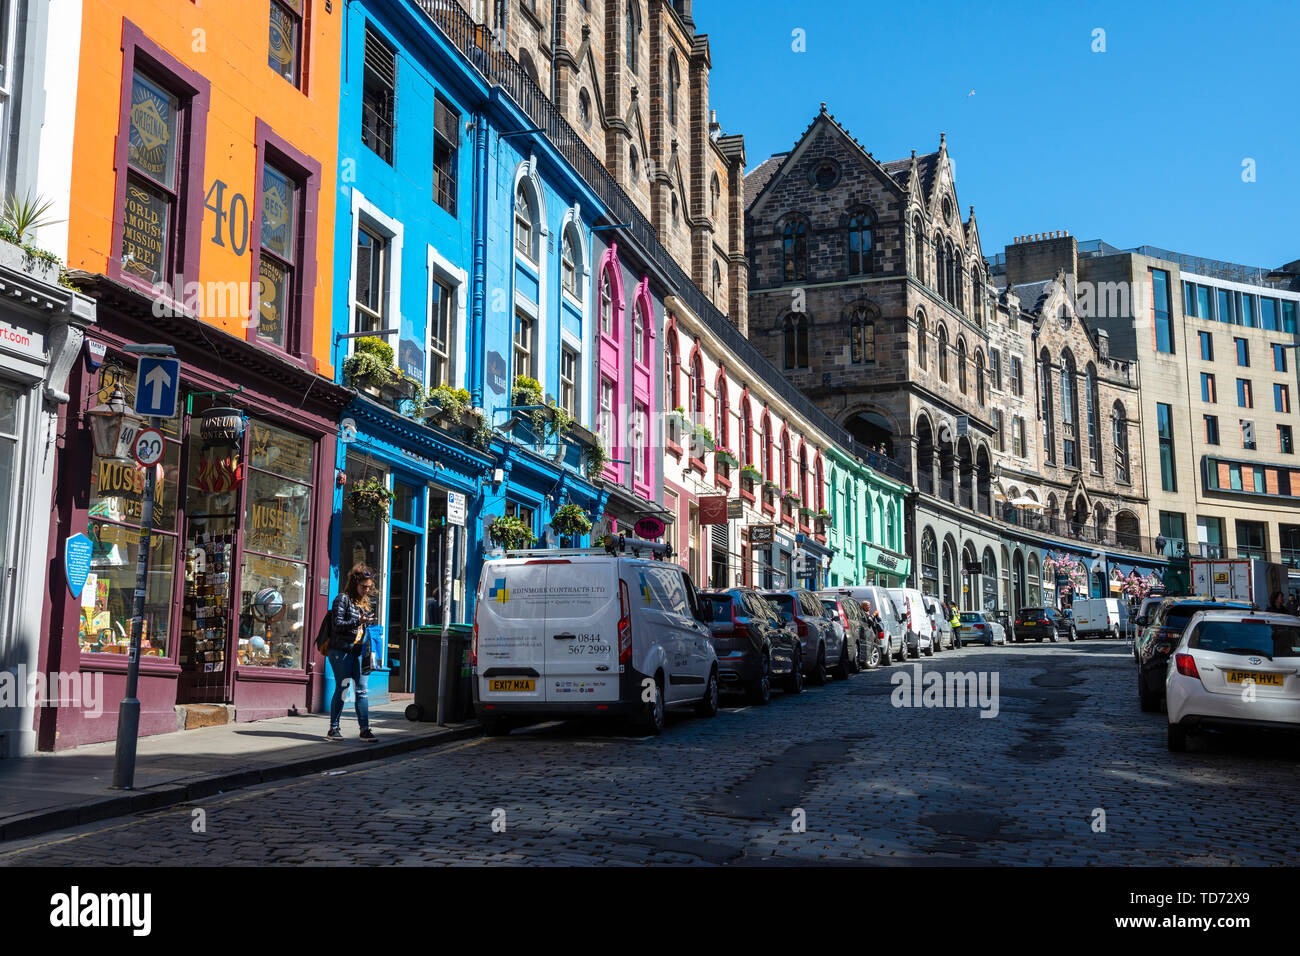 Colourful shopfronts along West Bow / Victoria Street in Edinburgh Old Town, Scotland, UK - Stock Image